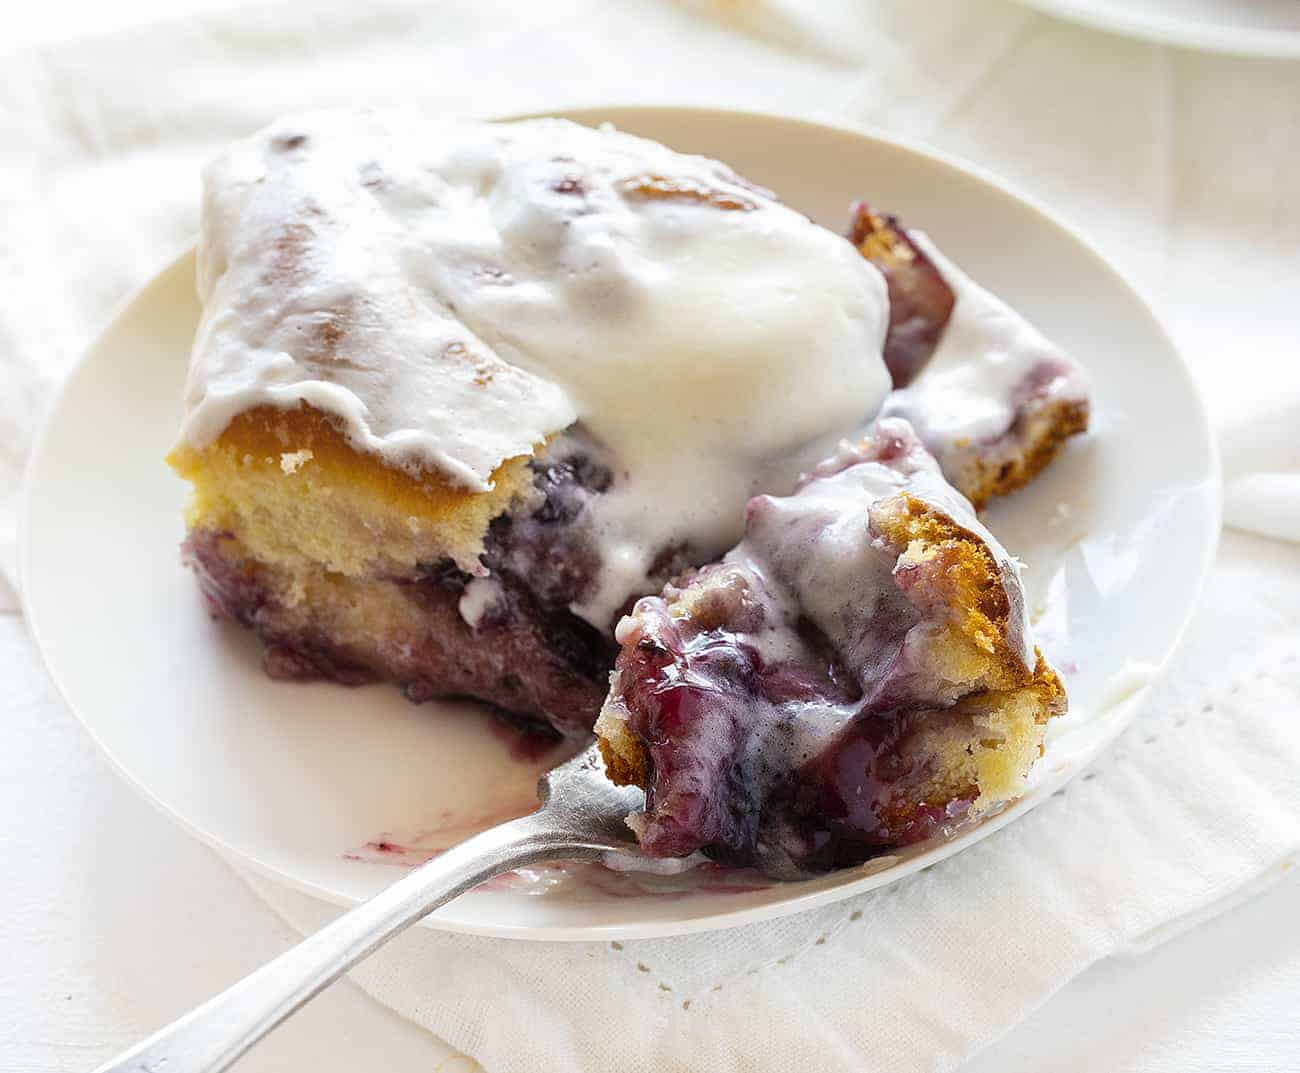 Fork Bite of Blueberry Lemon Sweet Rolls